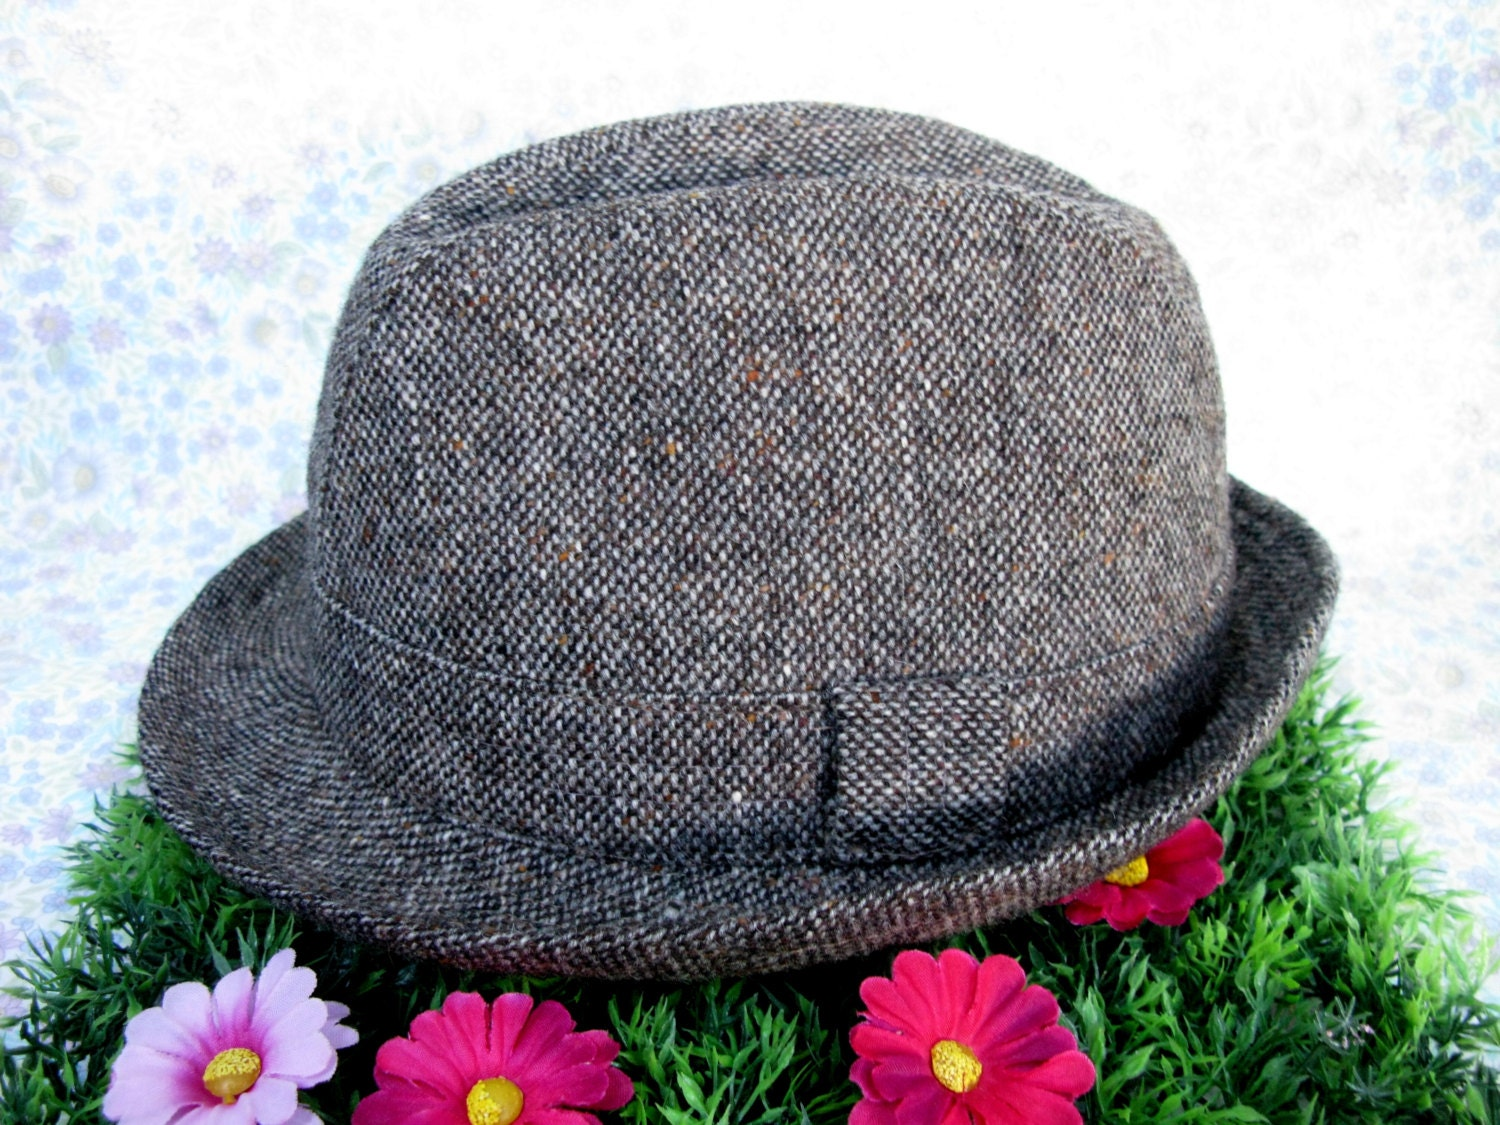 Donegal Trilby  Mens Trilby Hat  Trilby Hat  Vintage Trilby  Irish Trilby  Made In Ireland  Wool Trilby  Donegal Tweed